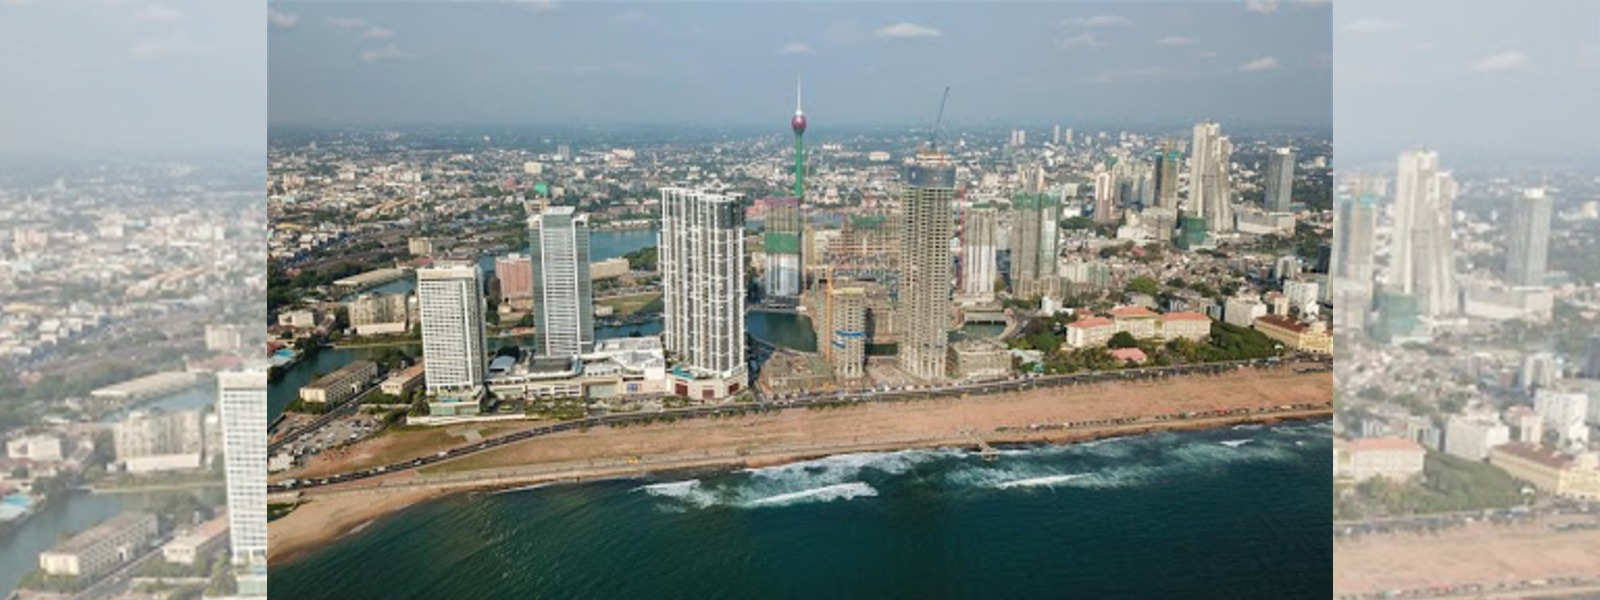 Air Quality Index of Colombo reaches Good Level